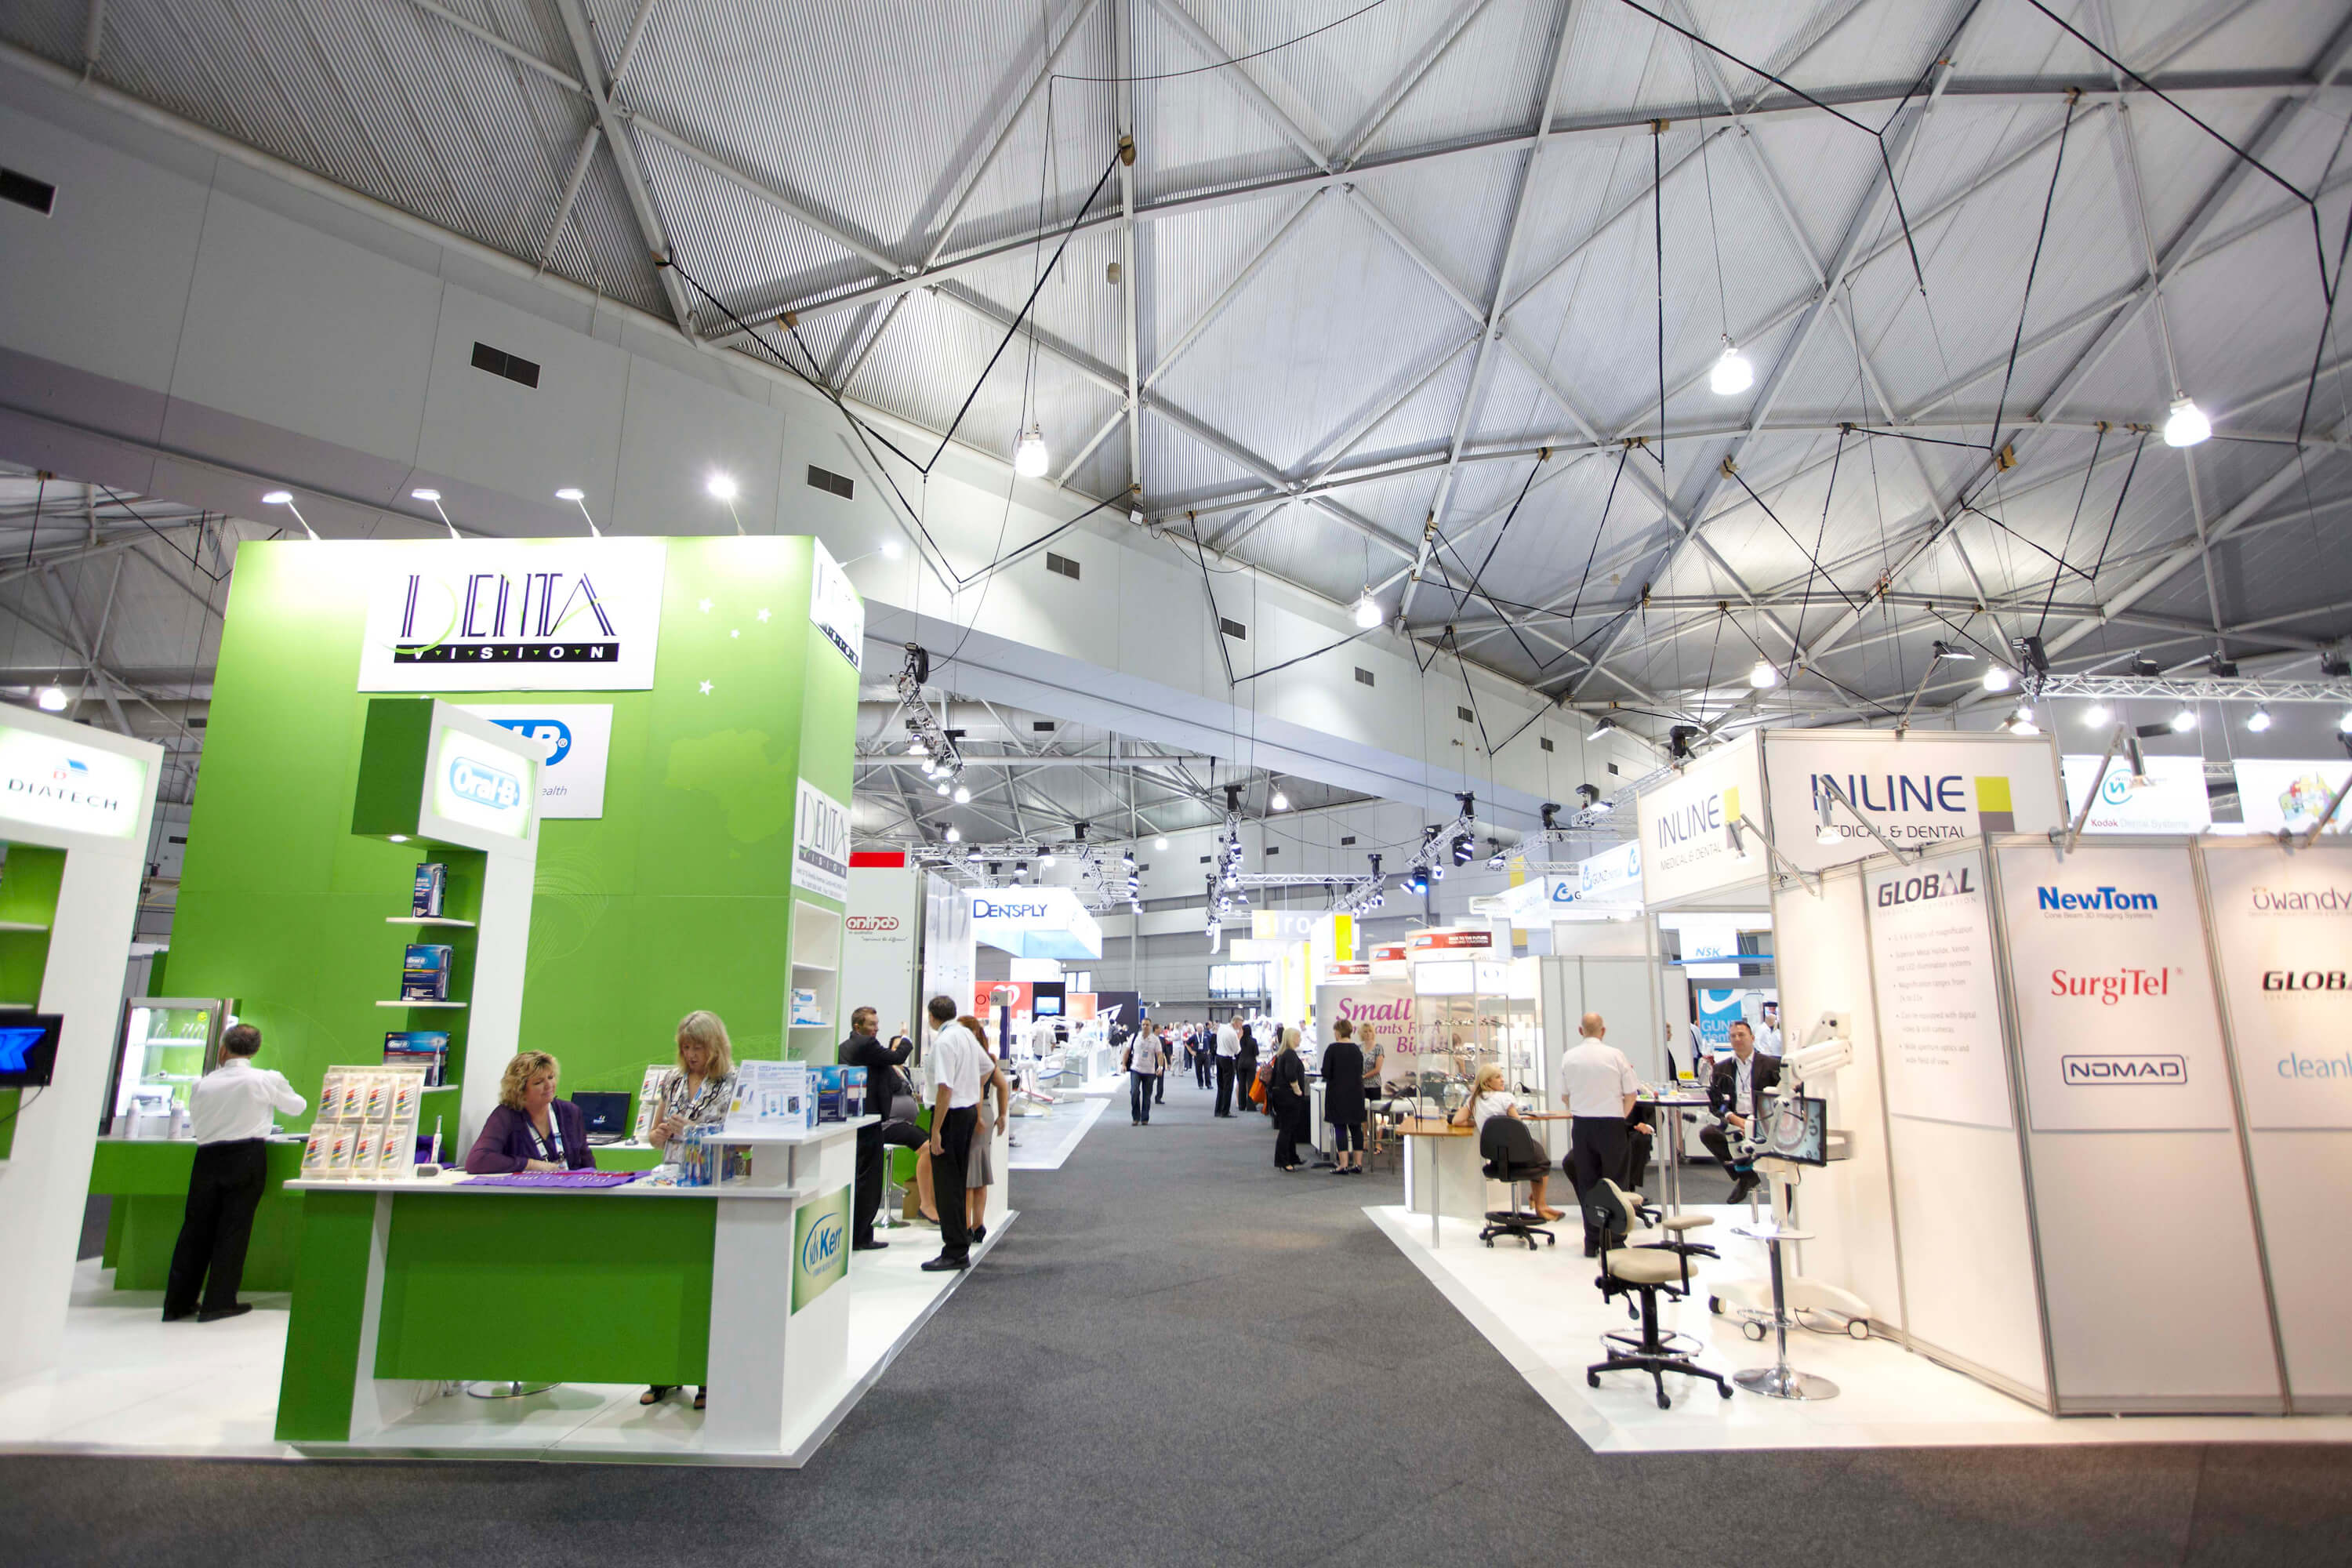 What Makes Smart City Networks Tick? - exhibition hall